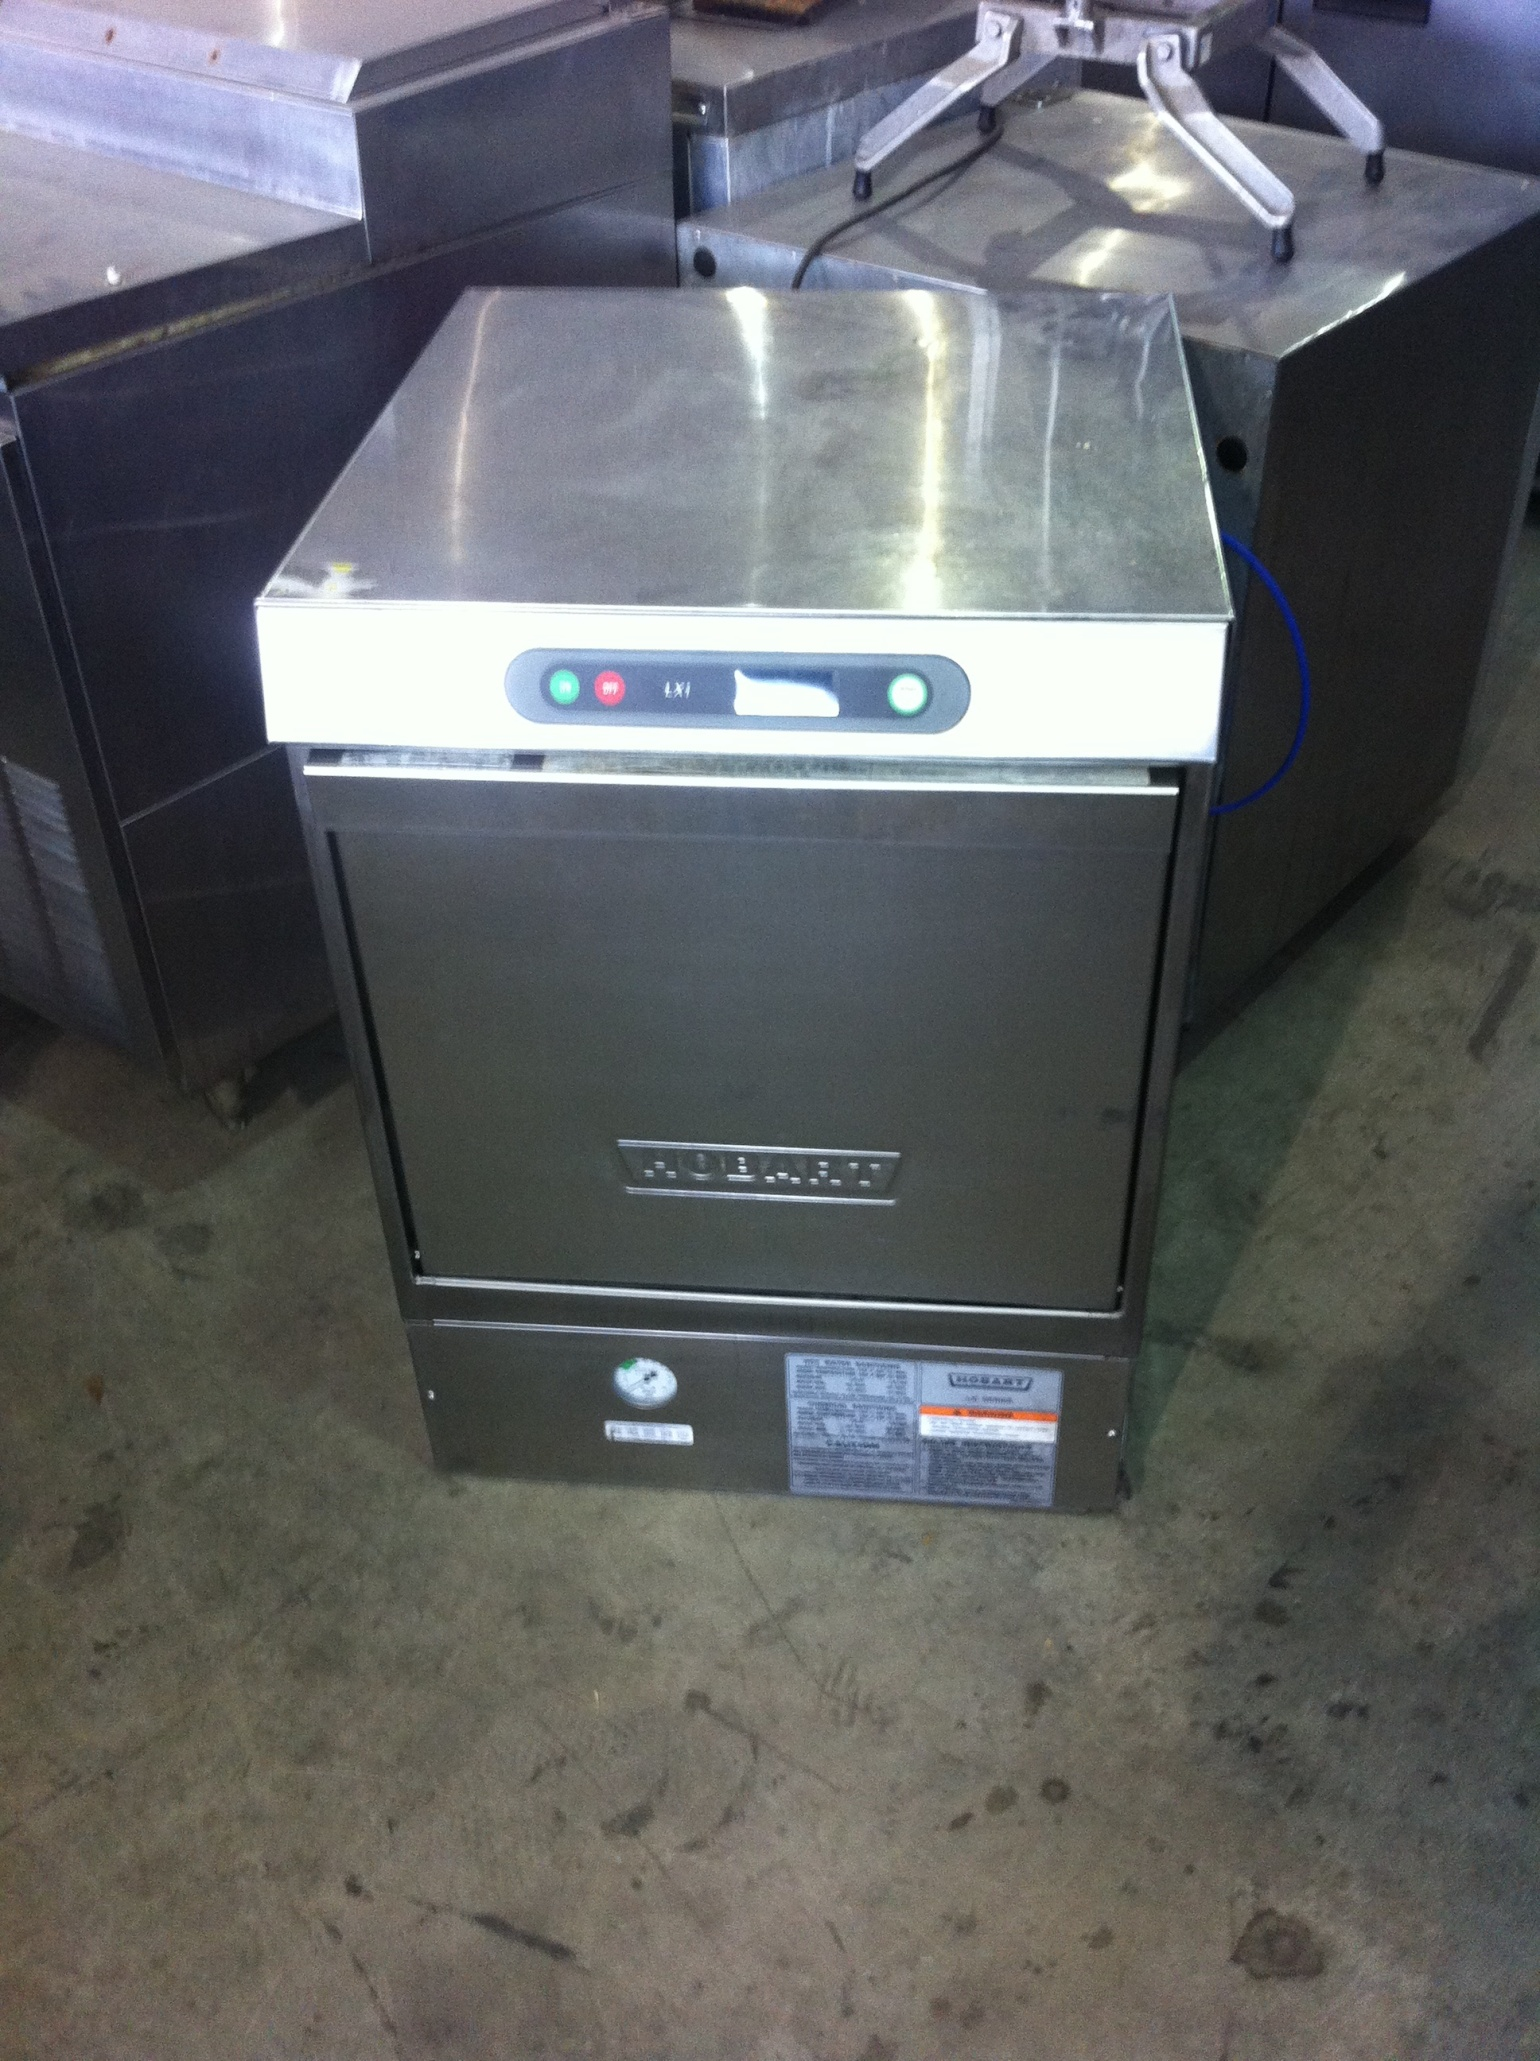 Hobart LX-1 Dishwasher